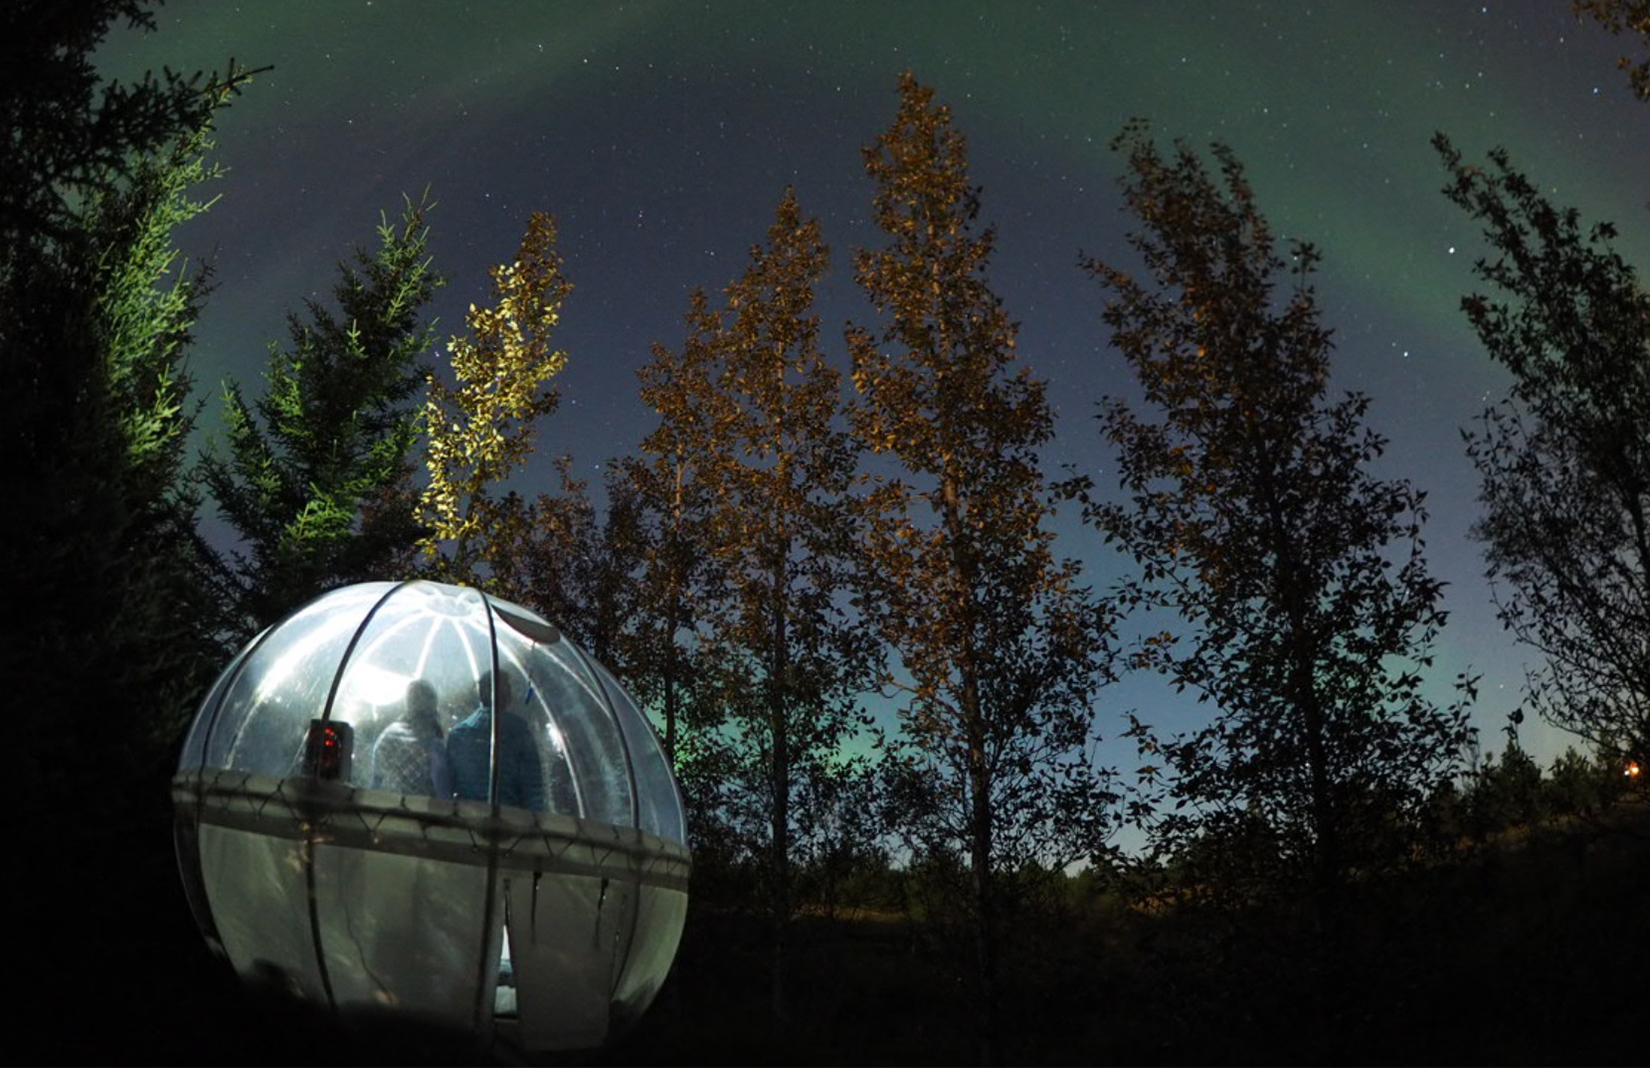 5 Million Star Hotel / Buubble in Iceland - it's exact location is kept a secret, but it's surrounded by forest and has clear views of the Northern Lights